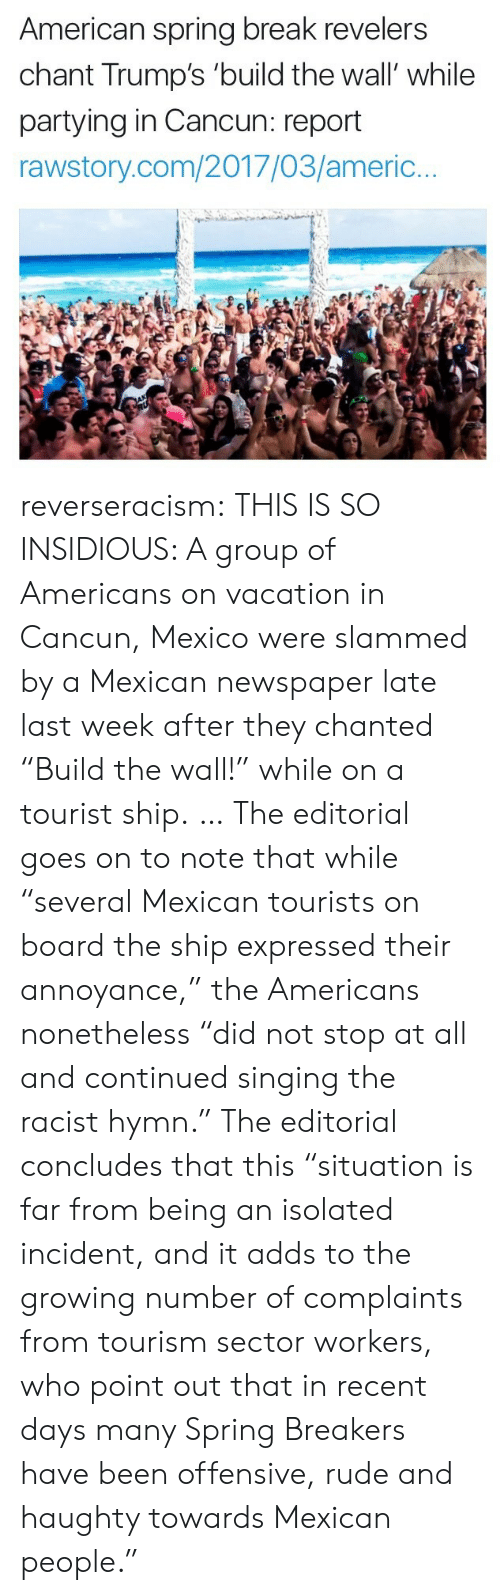 """annoyance: American spring break revelers  chant Trump's 'build the wall' while  partying in Cancun: report  rawstory.com/2017/03/americ.. reverseracism: THIS IS SO INSIDIOUS:   A group of Americans on vacation in Cancun, Mexico were slammed by a Mexican newspaper late last week after they chanted """"Build the wall!"""" while on a tourist ship.  … The editorial goes on to note that while """"several Mexican tourists on board the ship expressed their annoyance,"""" the Americans nonetheless """"did not stop at all and continued singing the racist hymn.""""  The editorial concludes that this """"situation is far from being an isolated incident, and it adds to the growing number of complaints from tourism sector workers, who point out that in recent days many Spring Breakers have been offensive, rude and haughty towards Mexican people."""""""